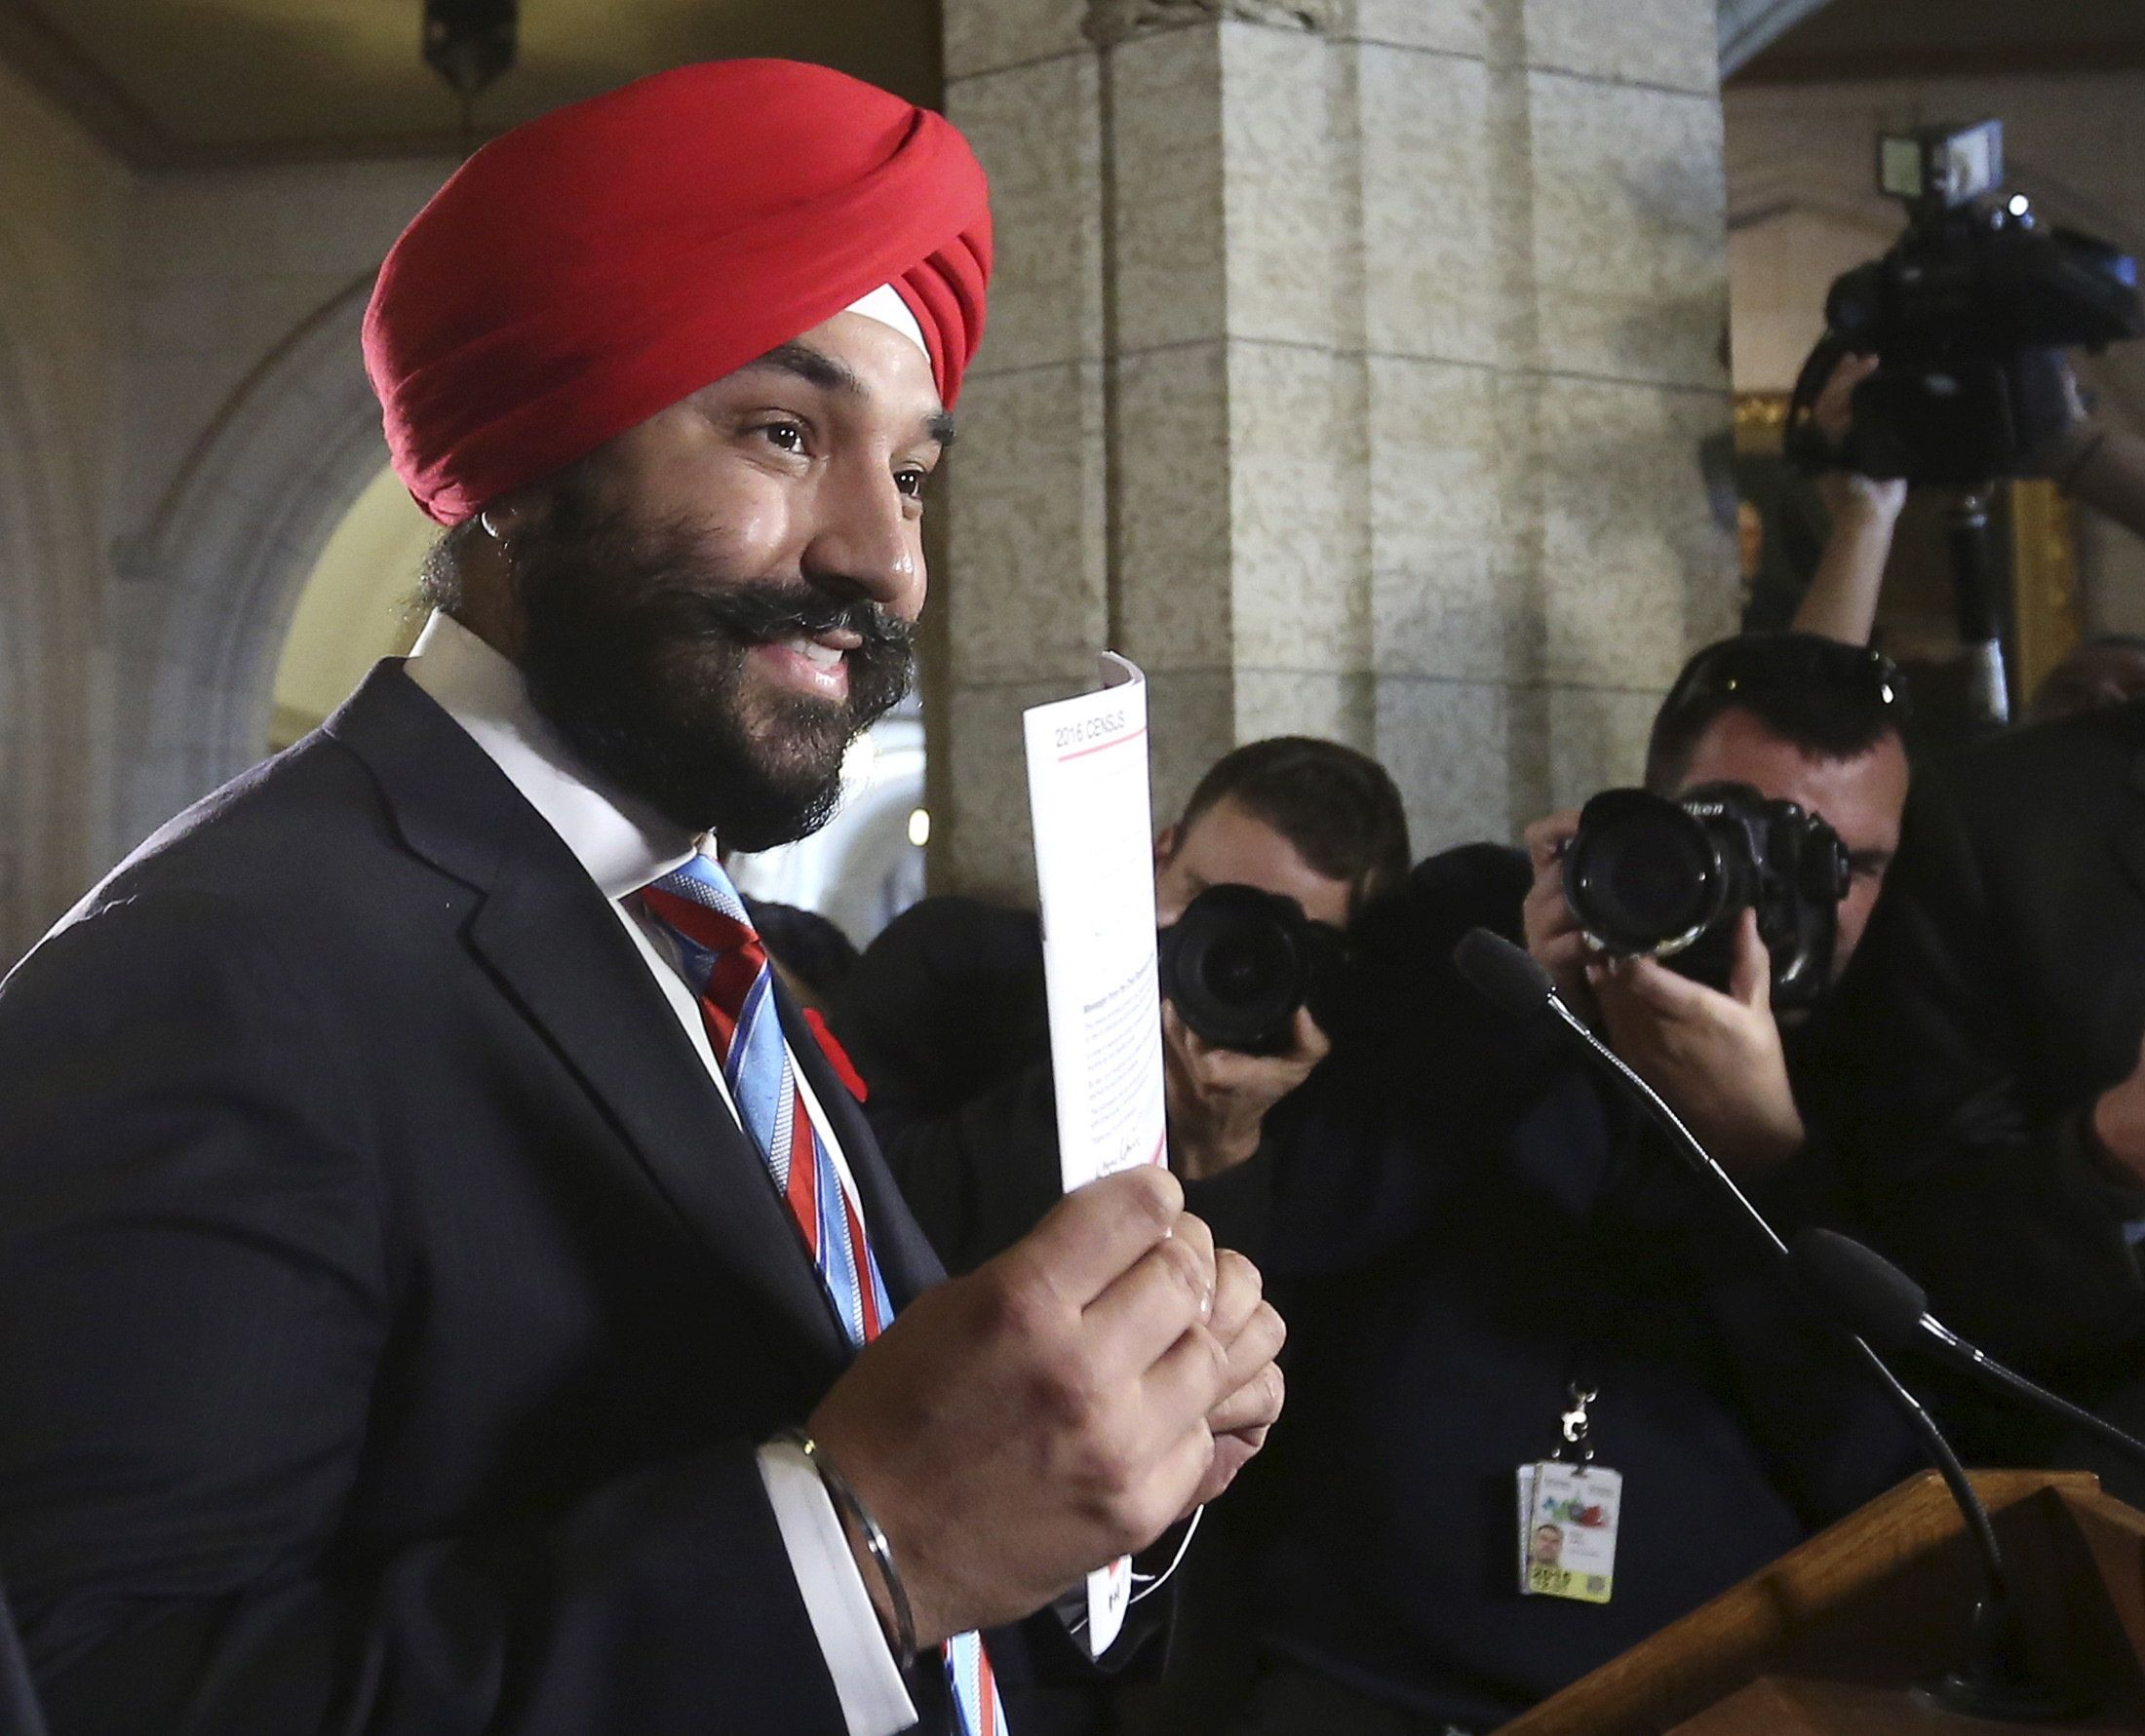 Canada's Innovation, Science and Economic Development Minister Navdeep Bains holds up a copy of a long-form census during a news conference on Parliament Hill in Ottawa, Canada November 5, 2015. REUTERS/Chris Wattie